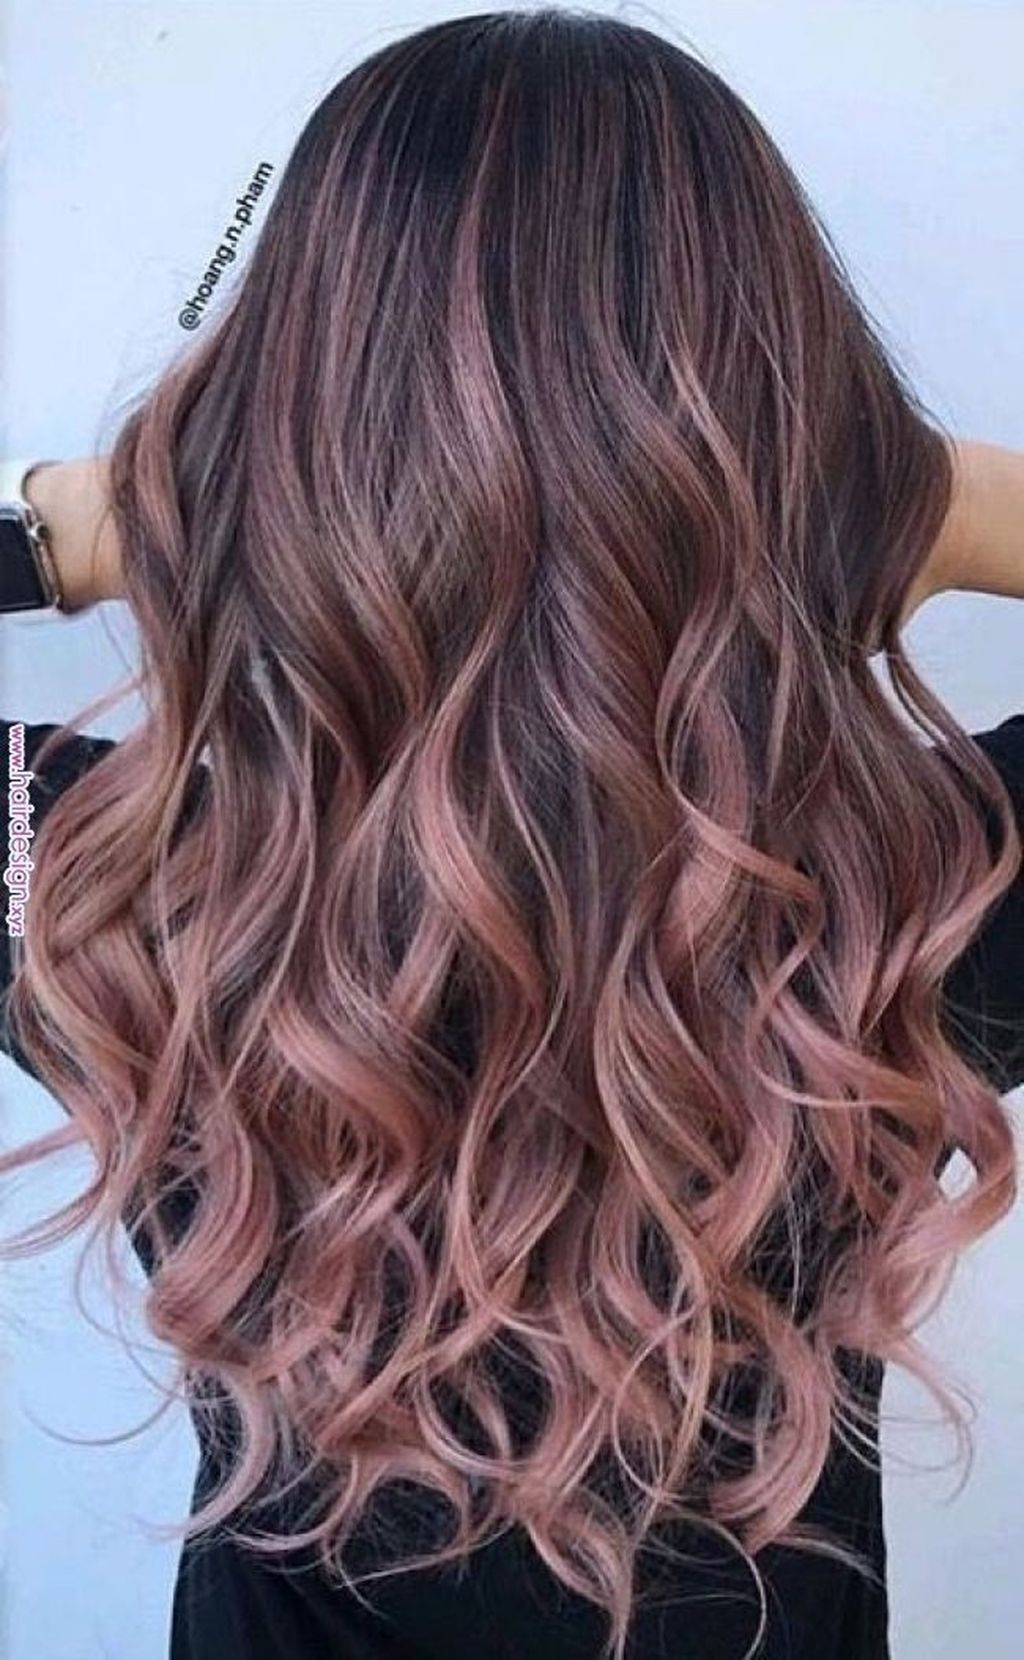 50 Unique Brunette Balayage Hair Color Ideas #fallhaircolors